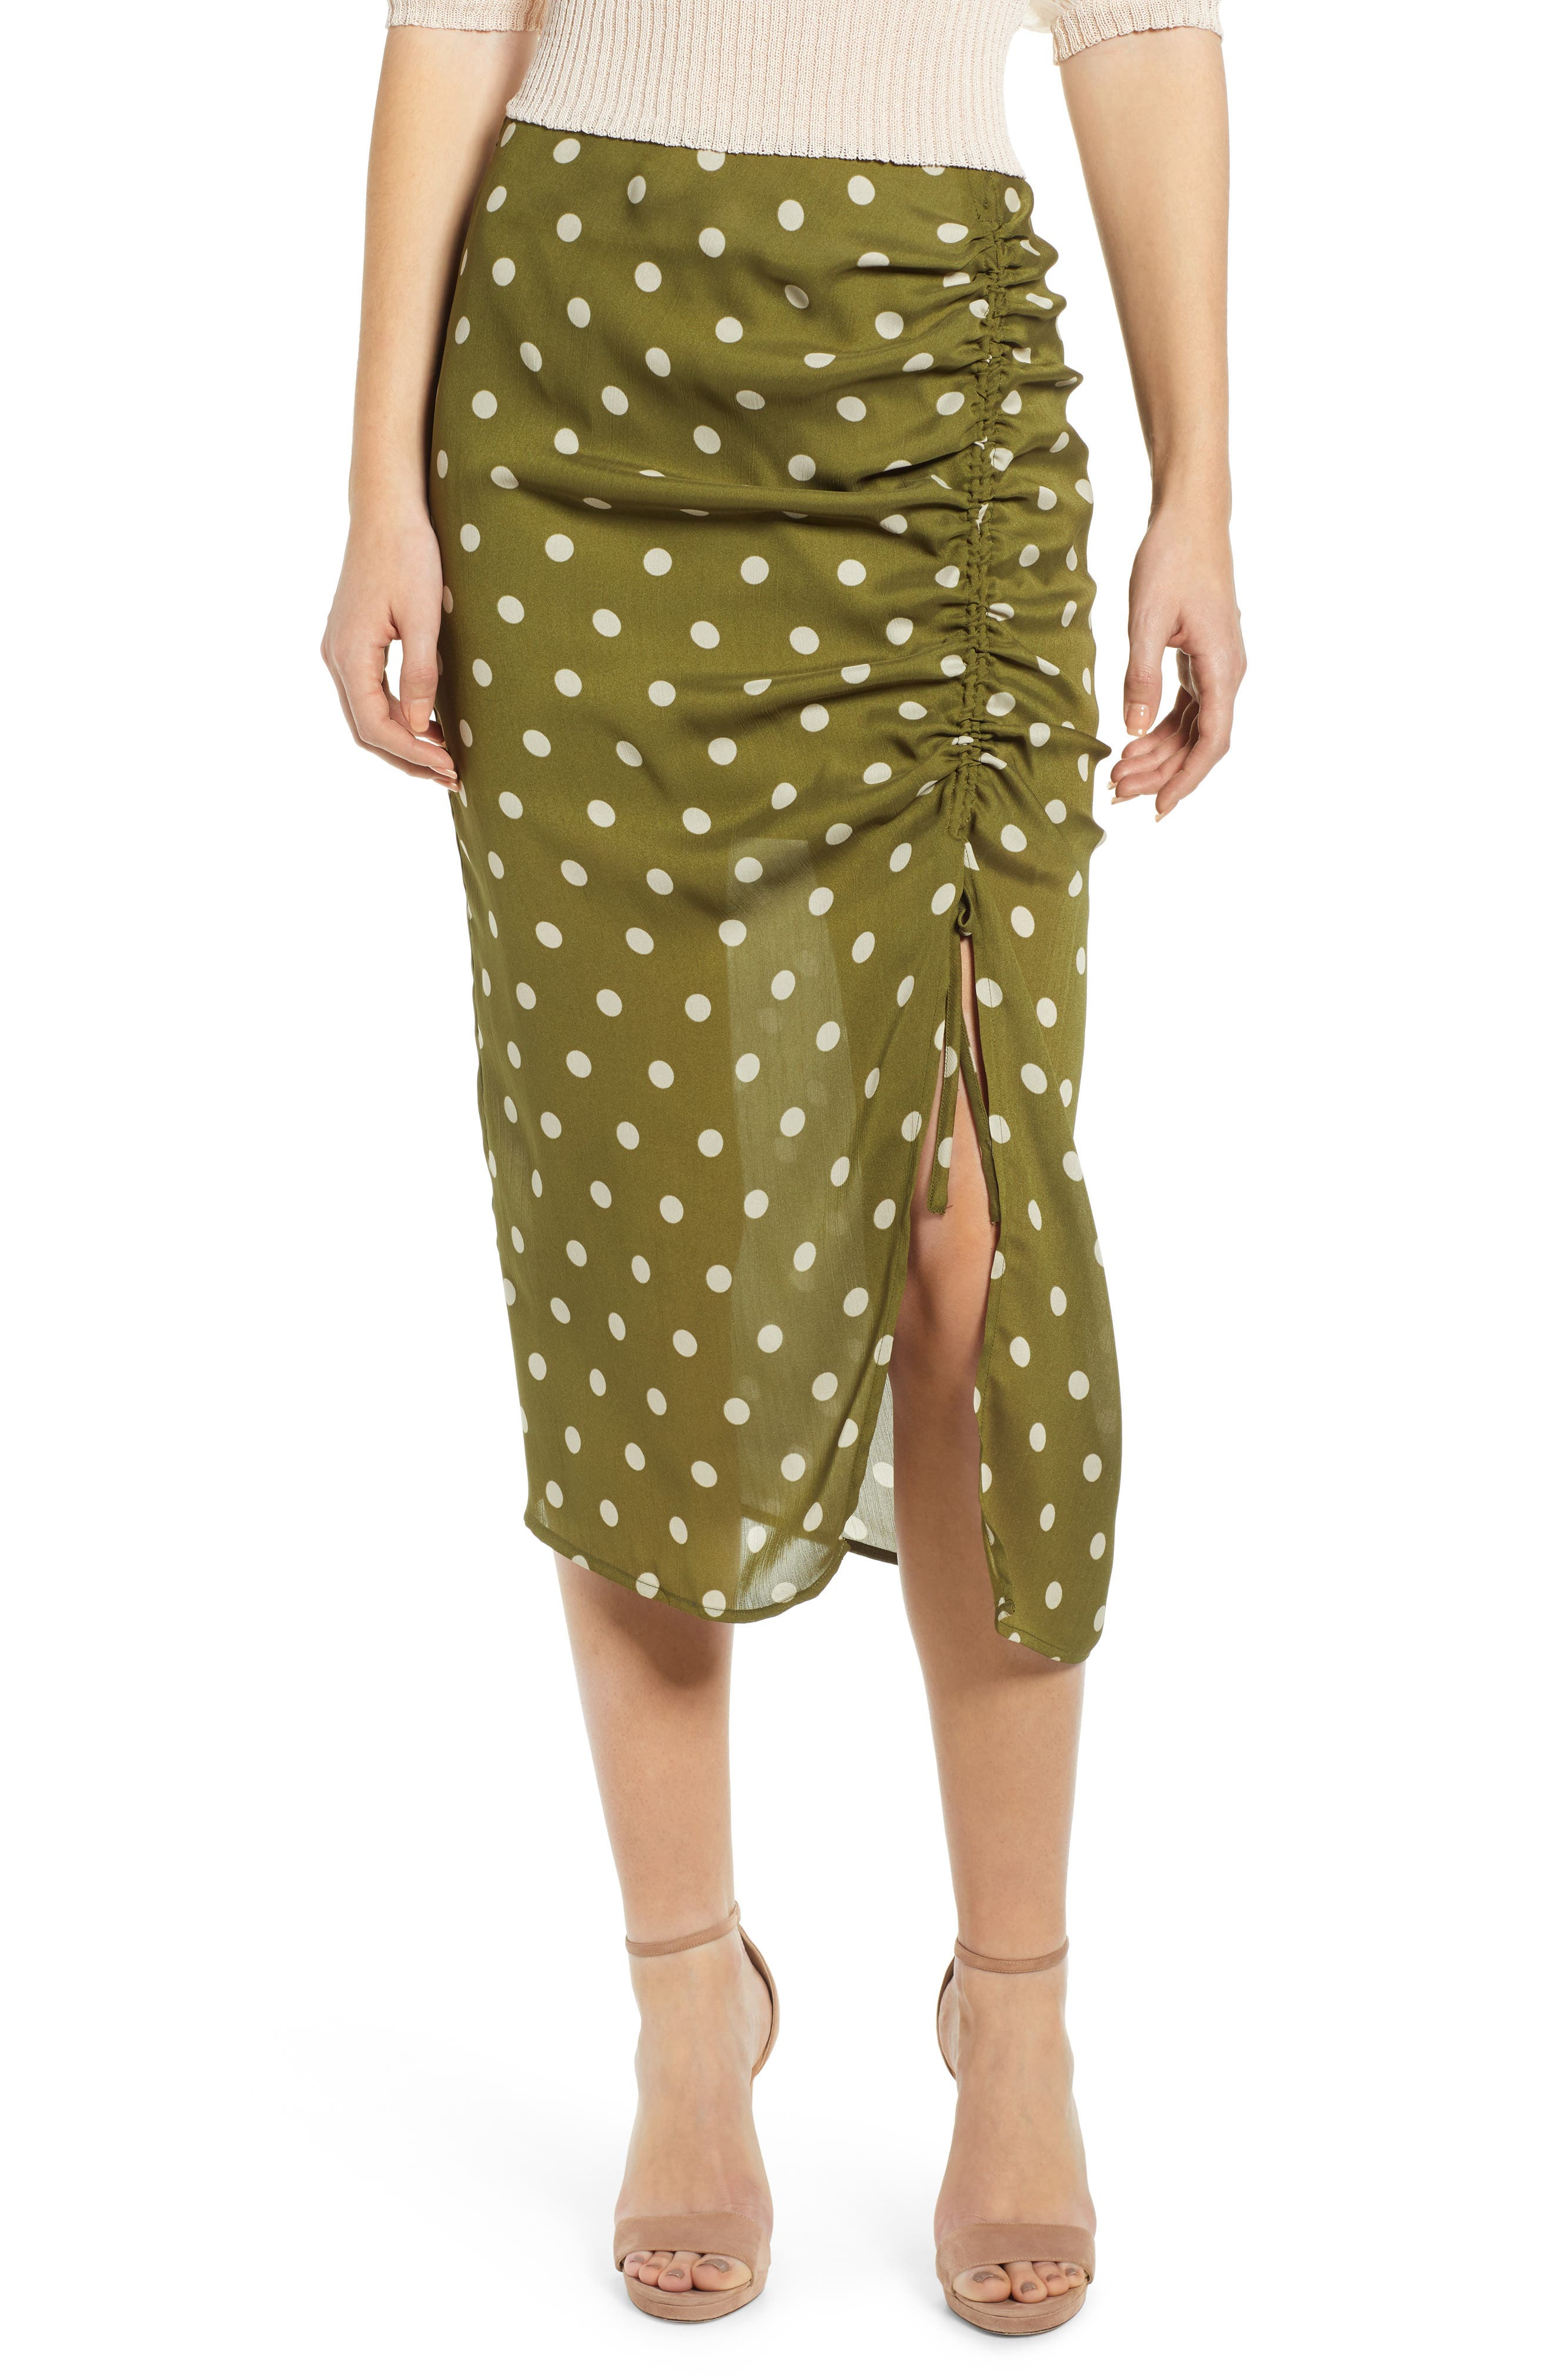 CHRISELLE LIM COLLECTION, Chriselle Lim Ren Ruched Skirt, Main thumbnail 1, color, CREAM/ OLIVE